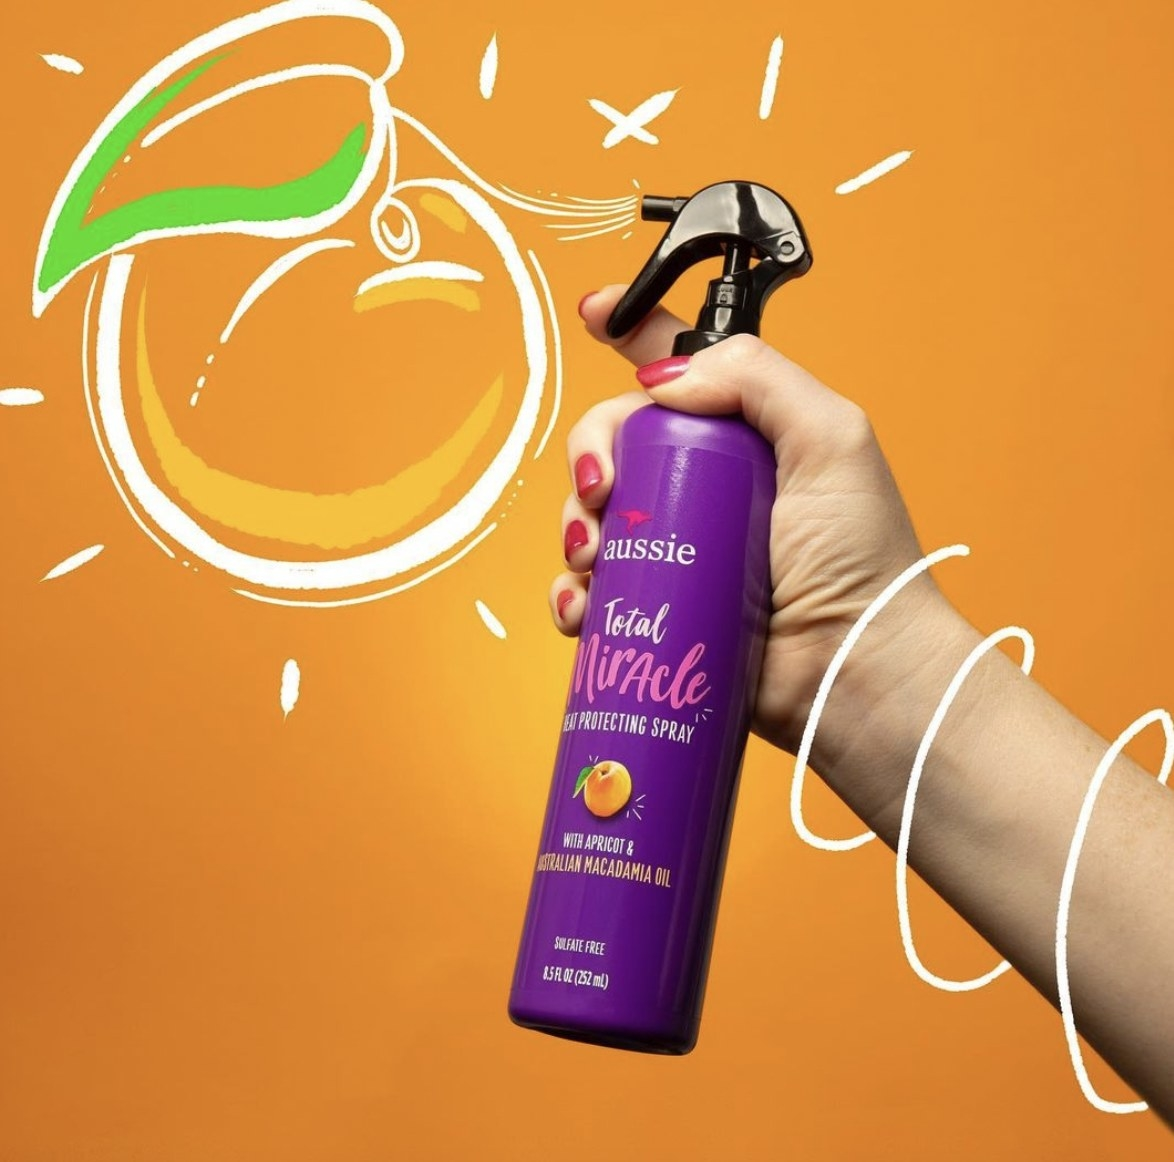 A bottle of heat protectant spray